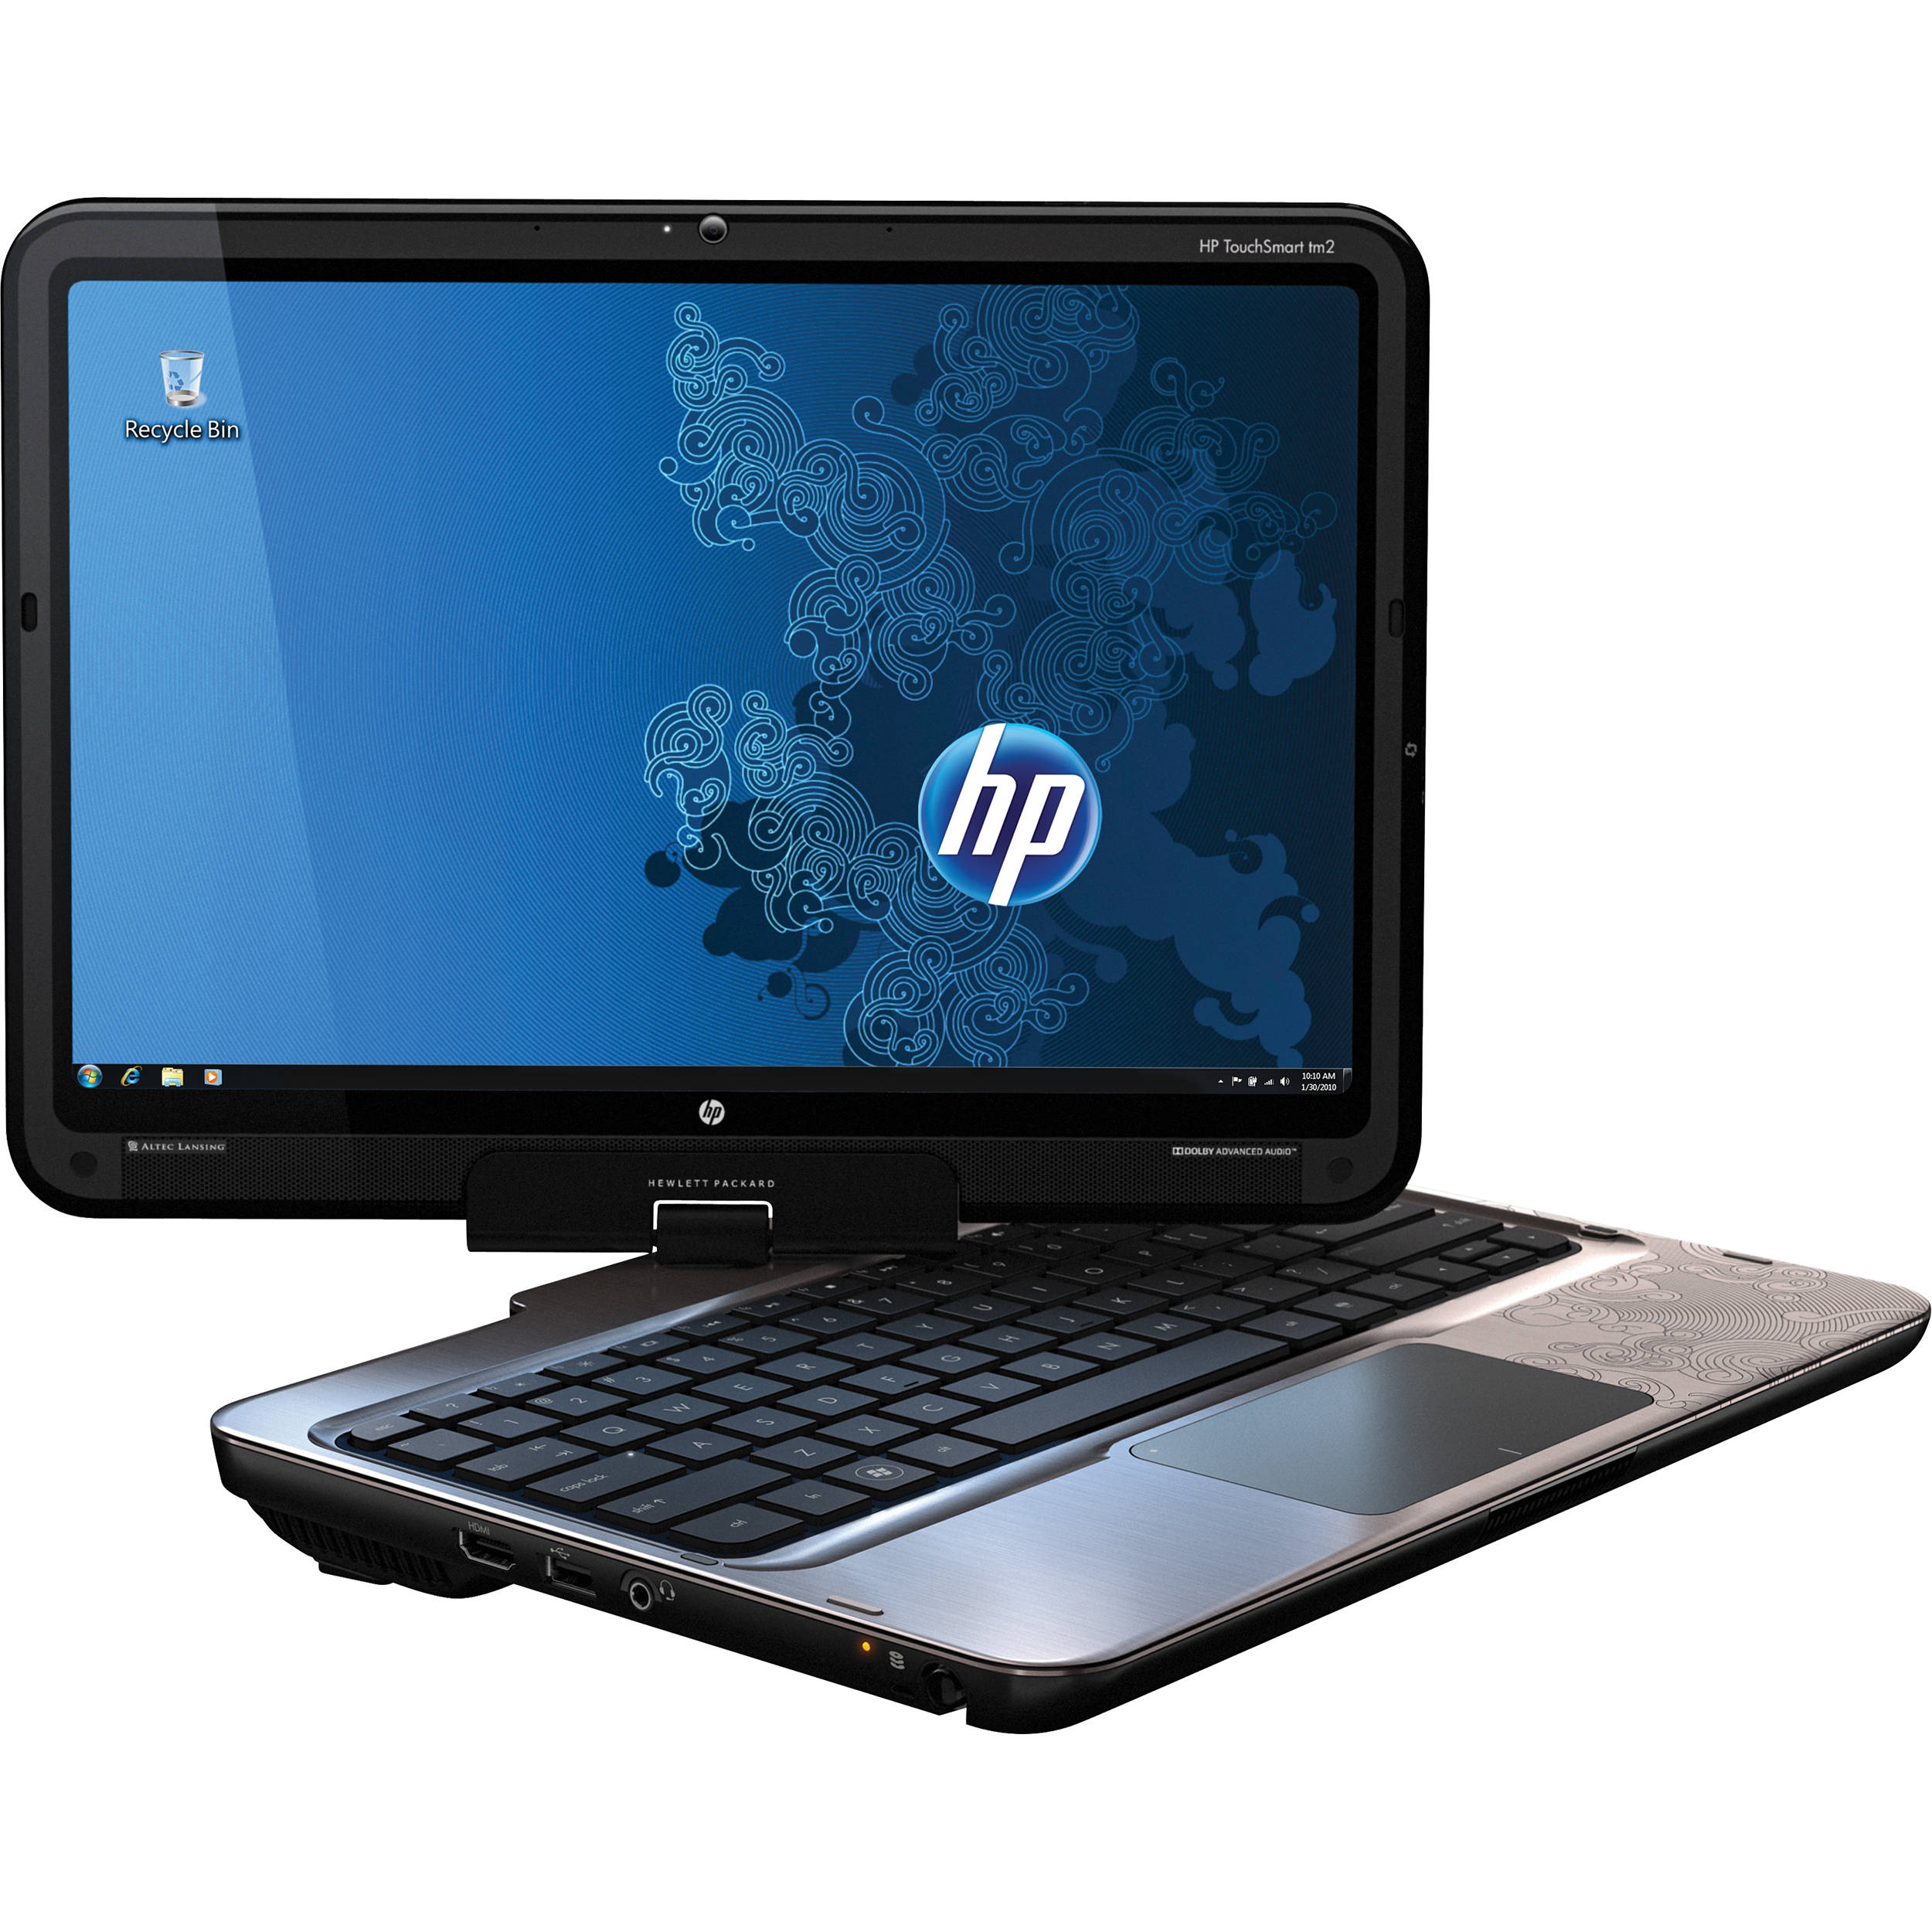 Hp touchsmart tm2 2050us 12 1 tablet notebook wq697ua aba for Notebook tablet